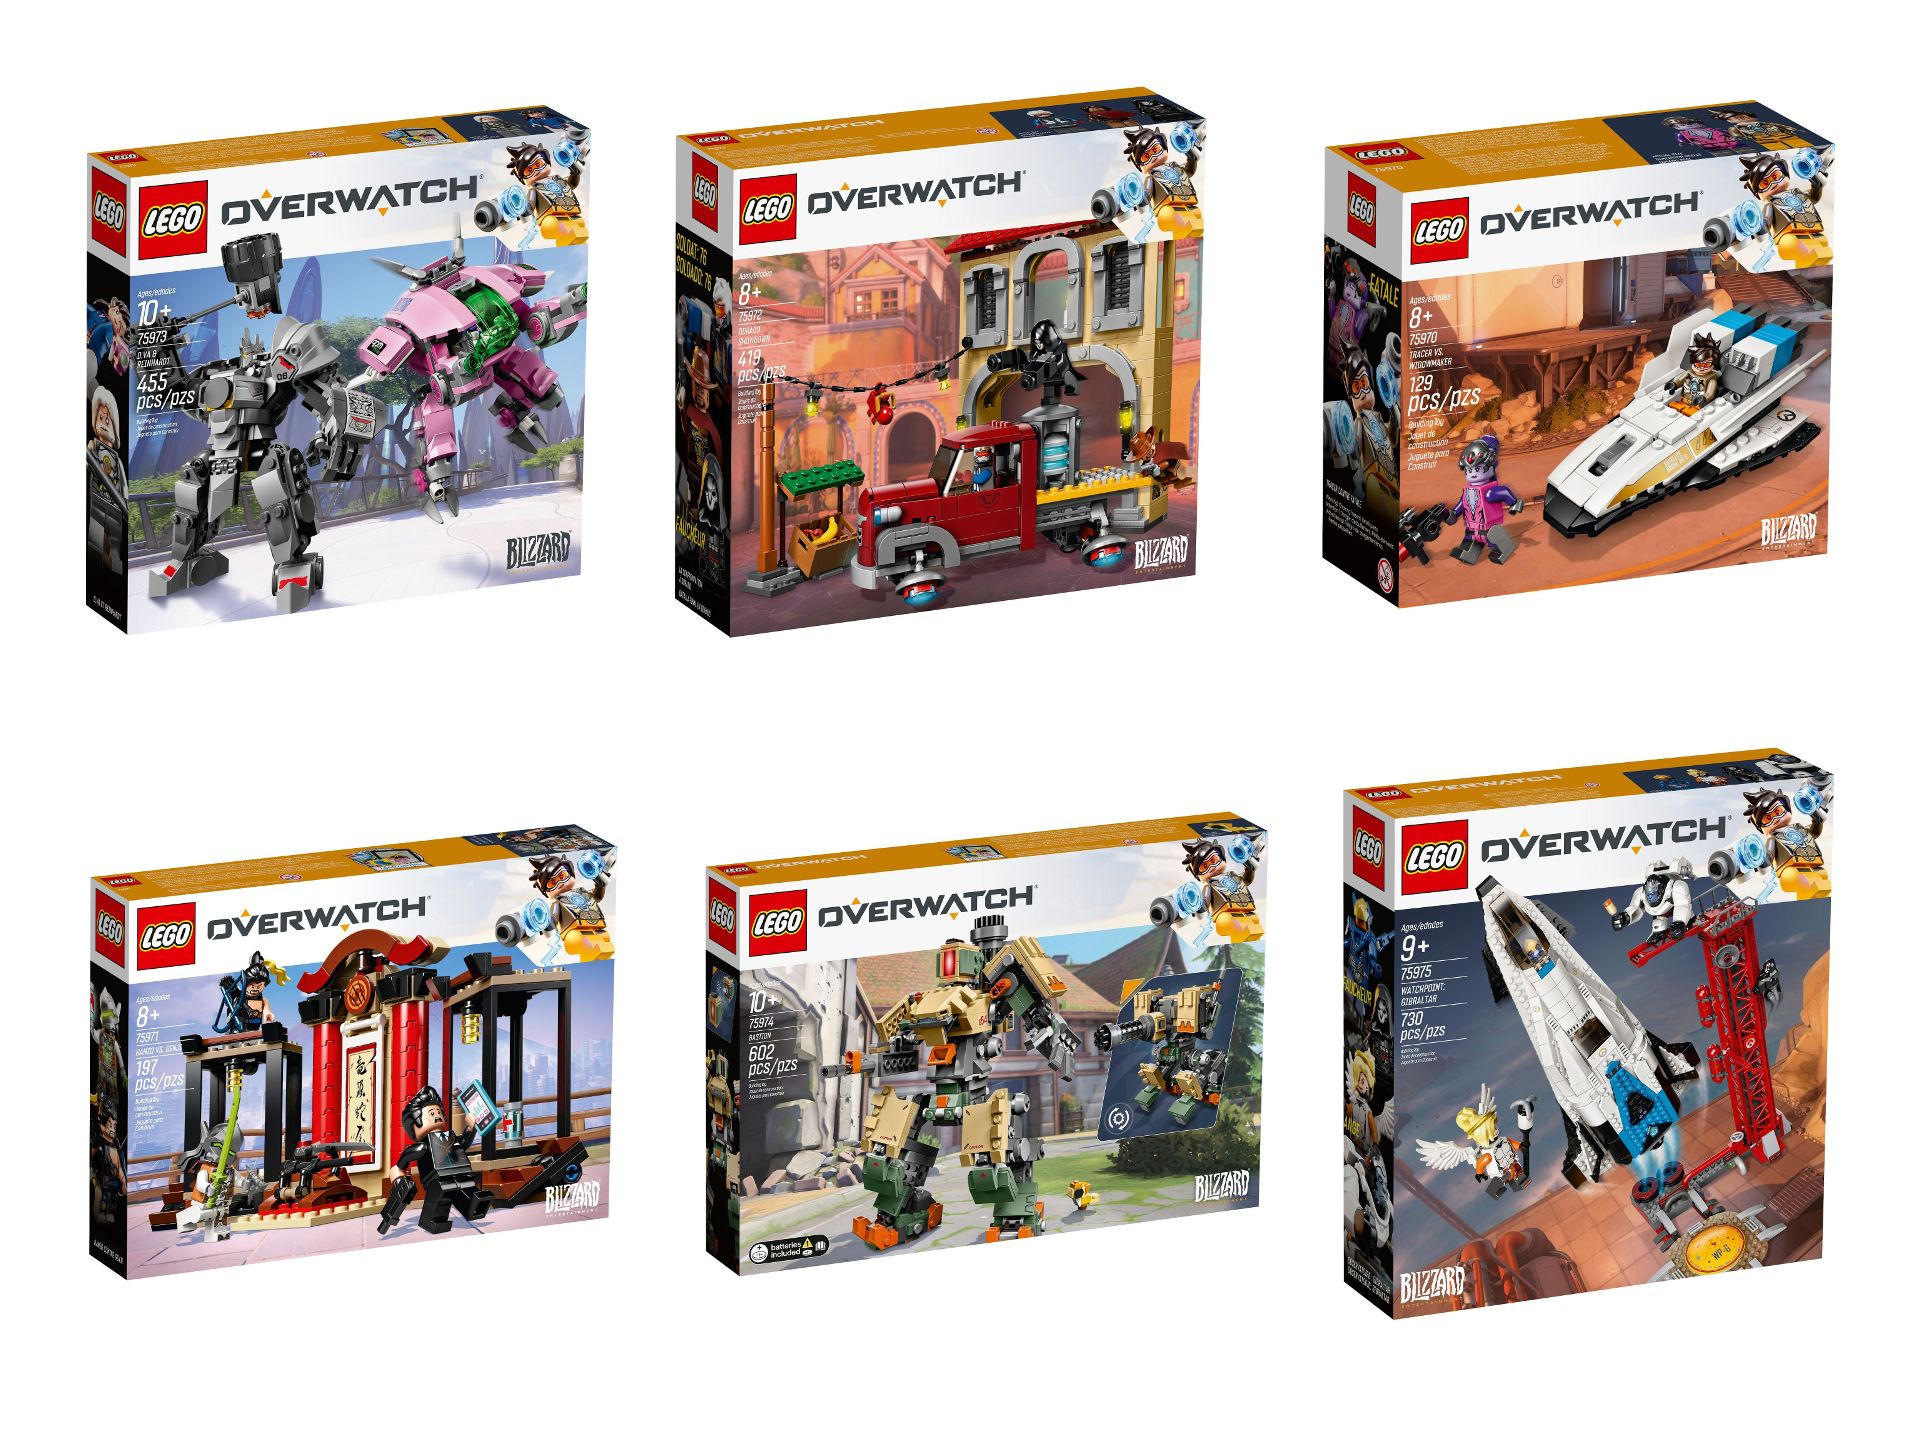 lego overwatch sets vorbestellbar ab 1 januar 2019. Black Bedroom Furniture Sets. Home Design Ideas